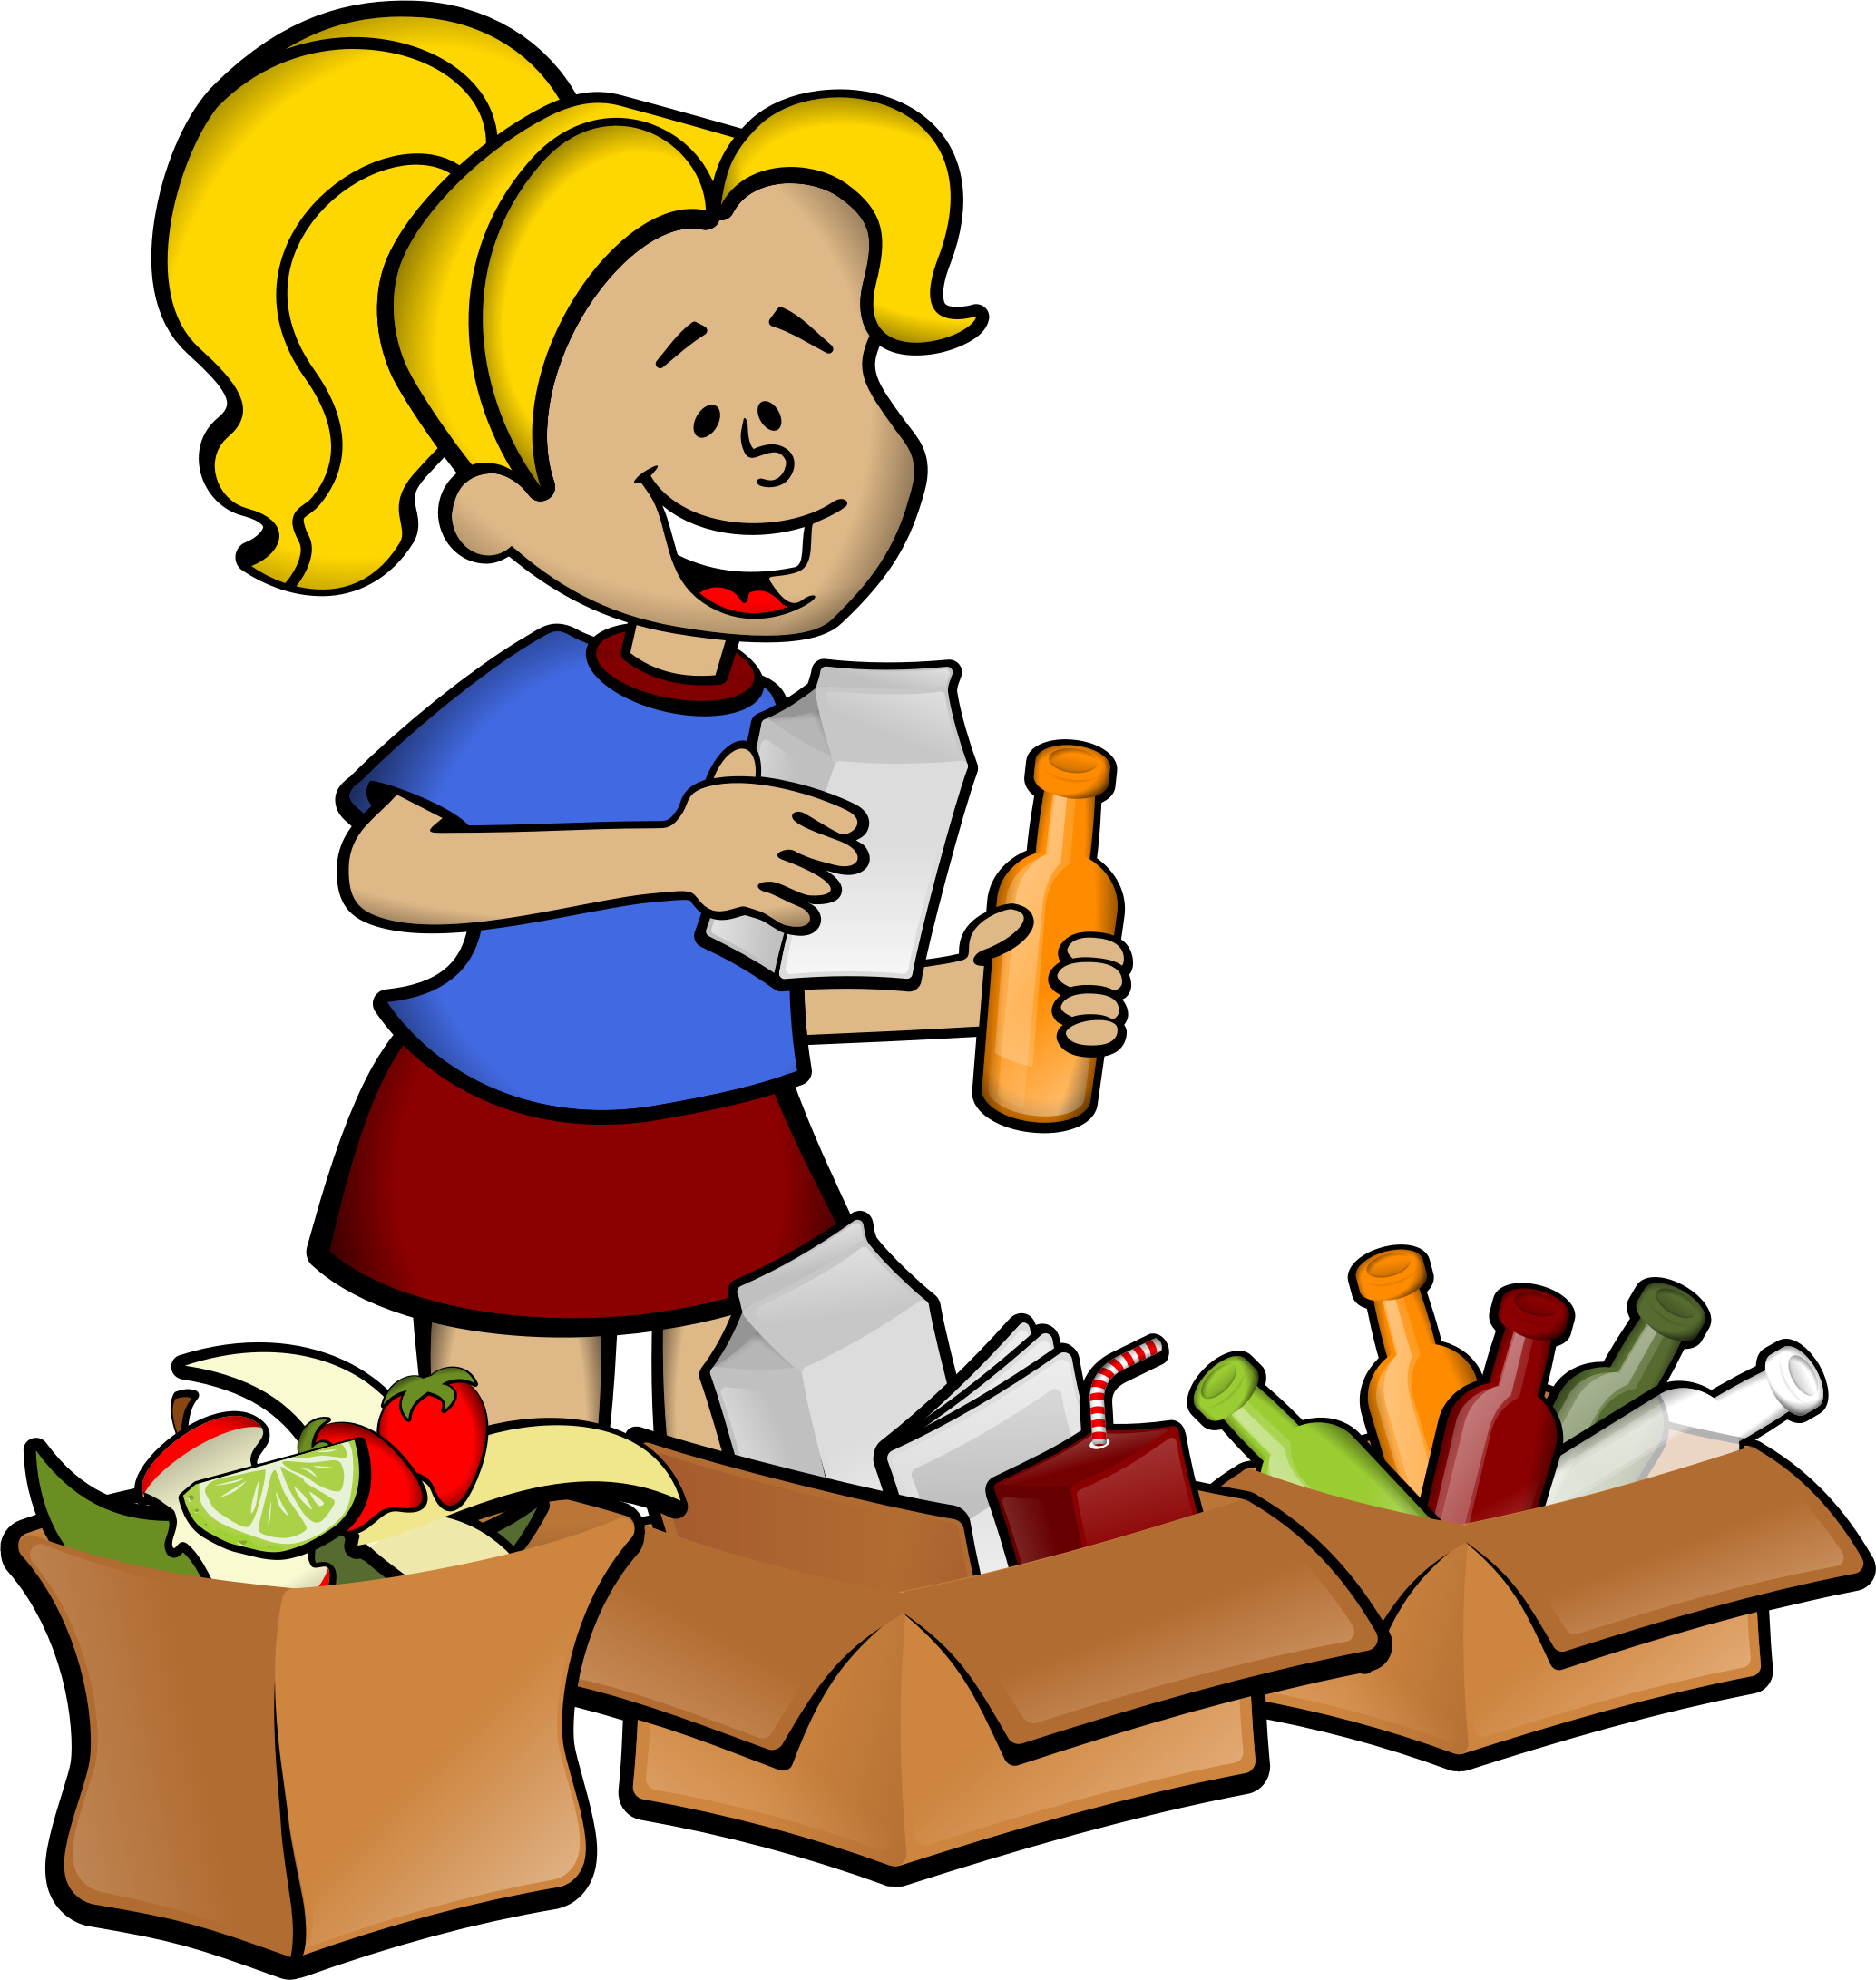 image free Boxes clipart groceries. Woman and big image.